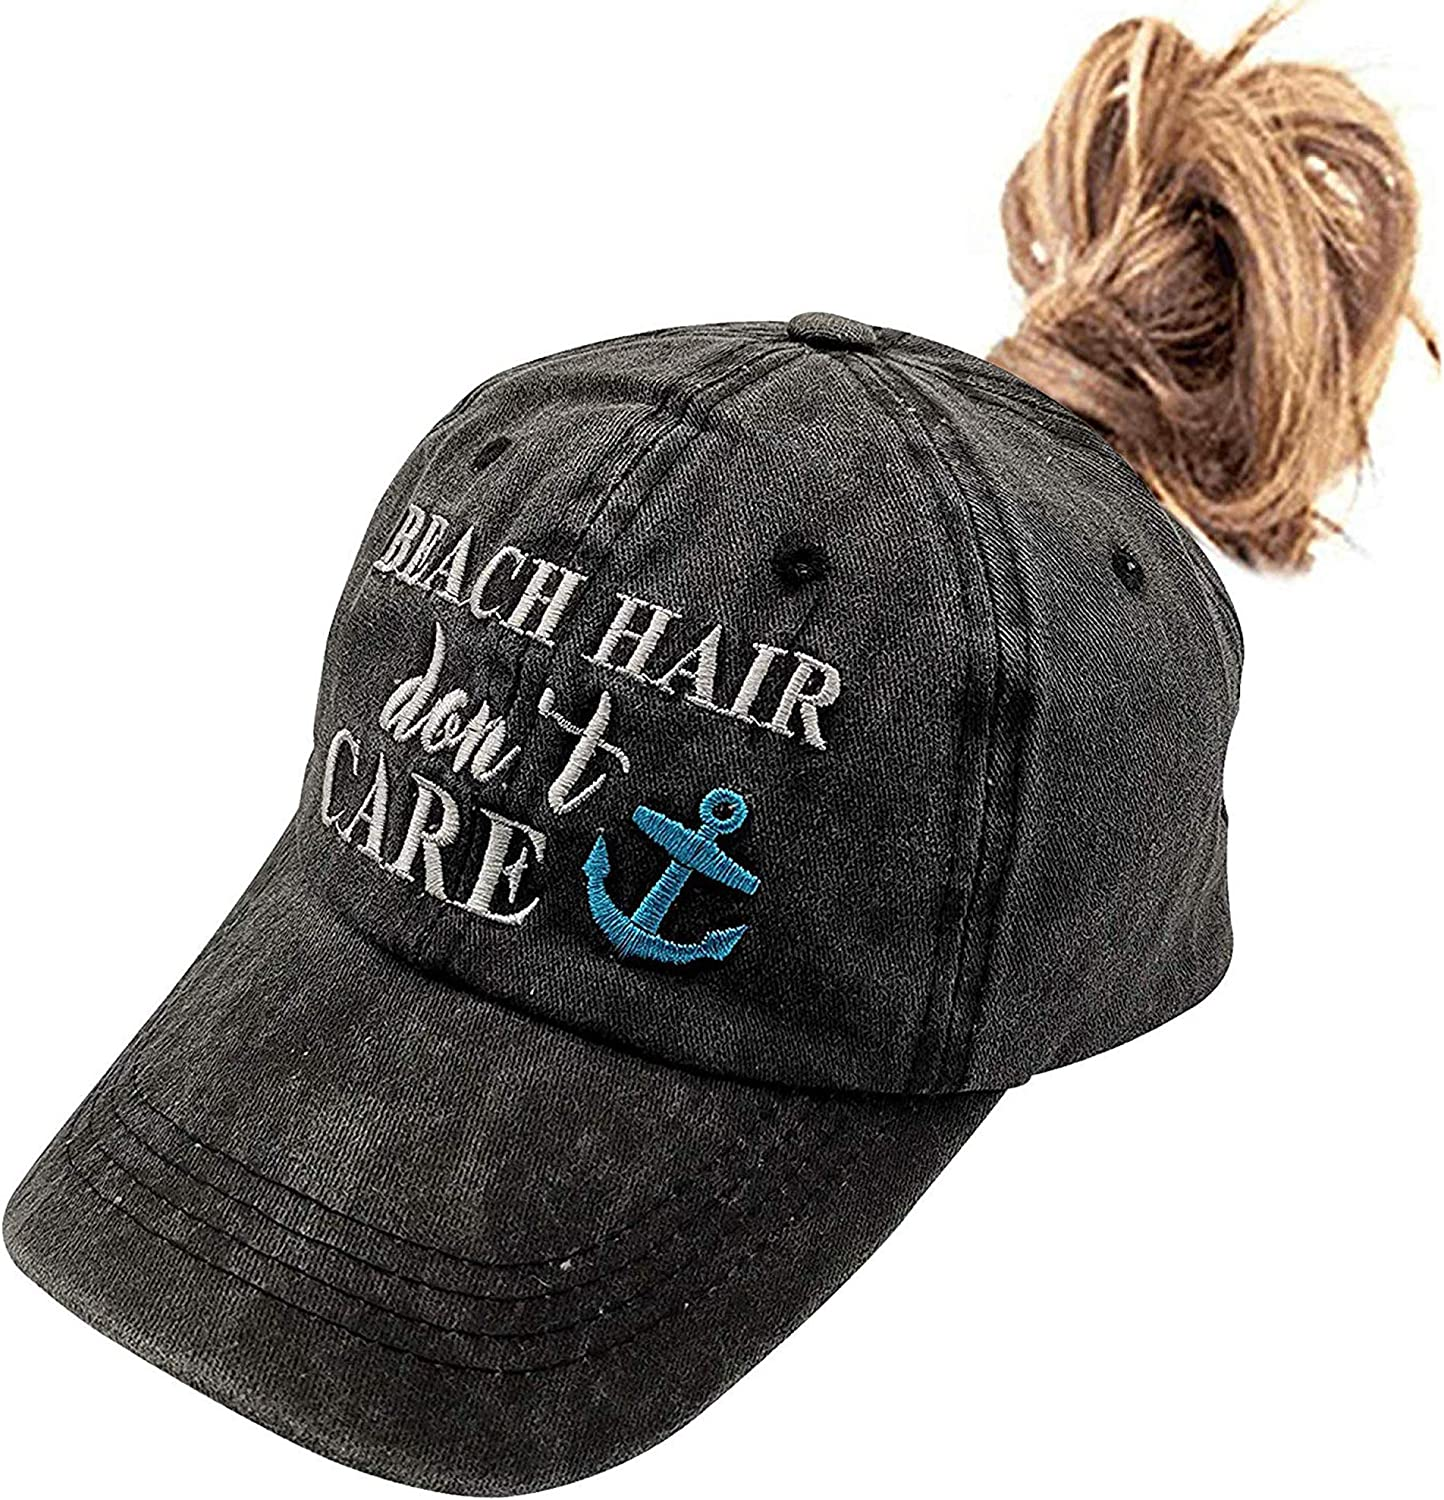 Waldeal Beach Don't Care Embroidered Baseball Cap Vintage Distressed Hat